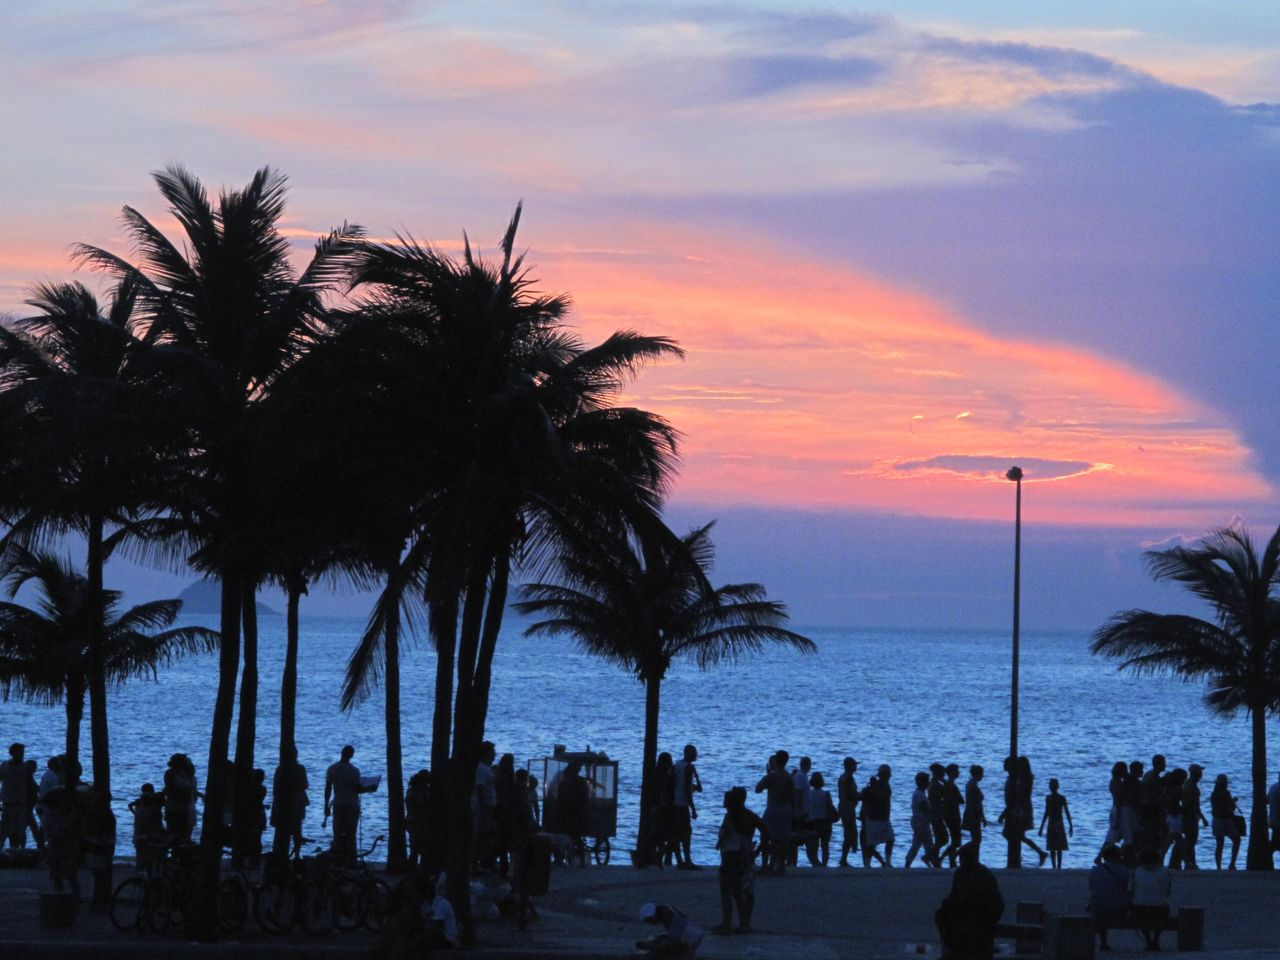 sky, sunset, tropical climate, palm tree, tree, sea, water, cloud - sky, silhouette, beach, beauty in nature, scenics - nature, nature, plant, group of people, horizon over water, land, orange color, tranquil scene, outdoors